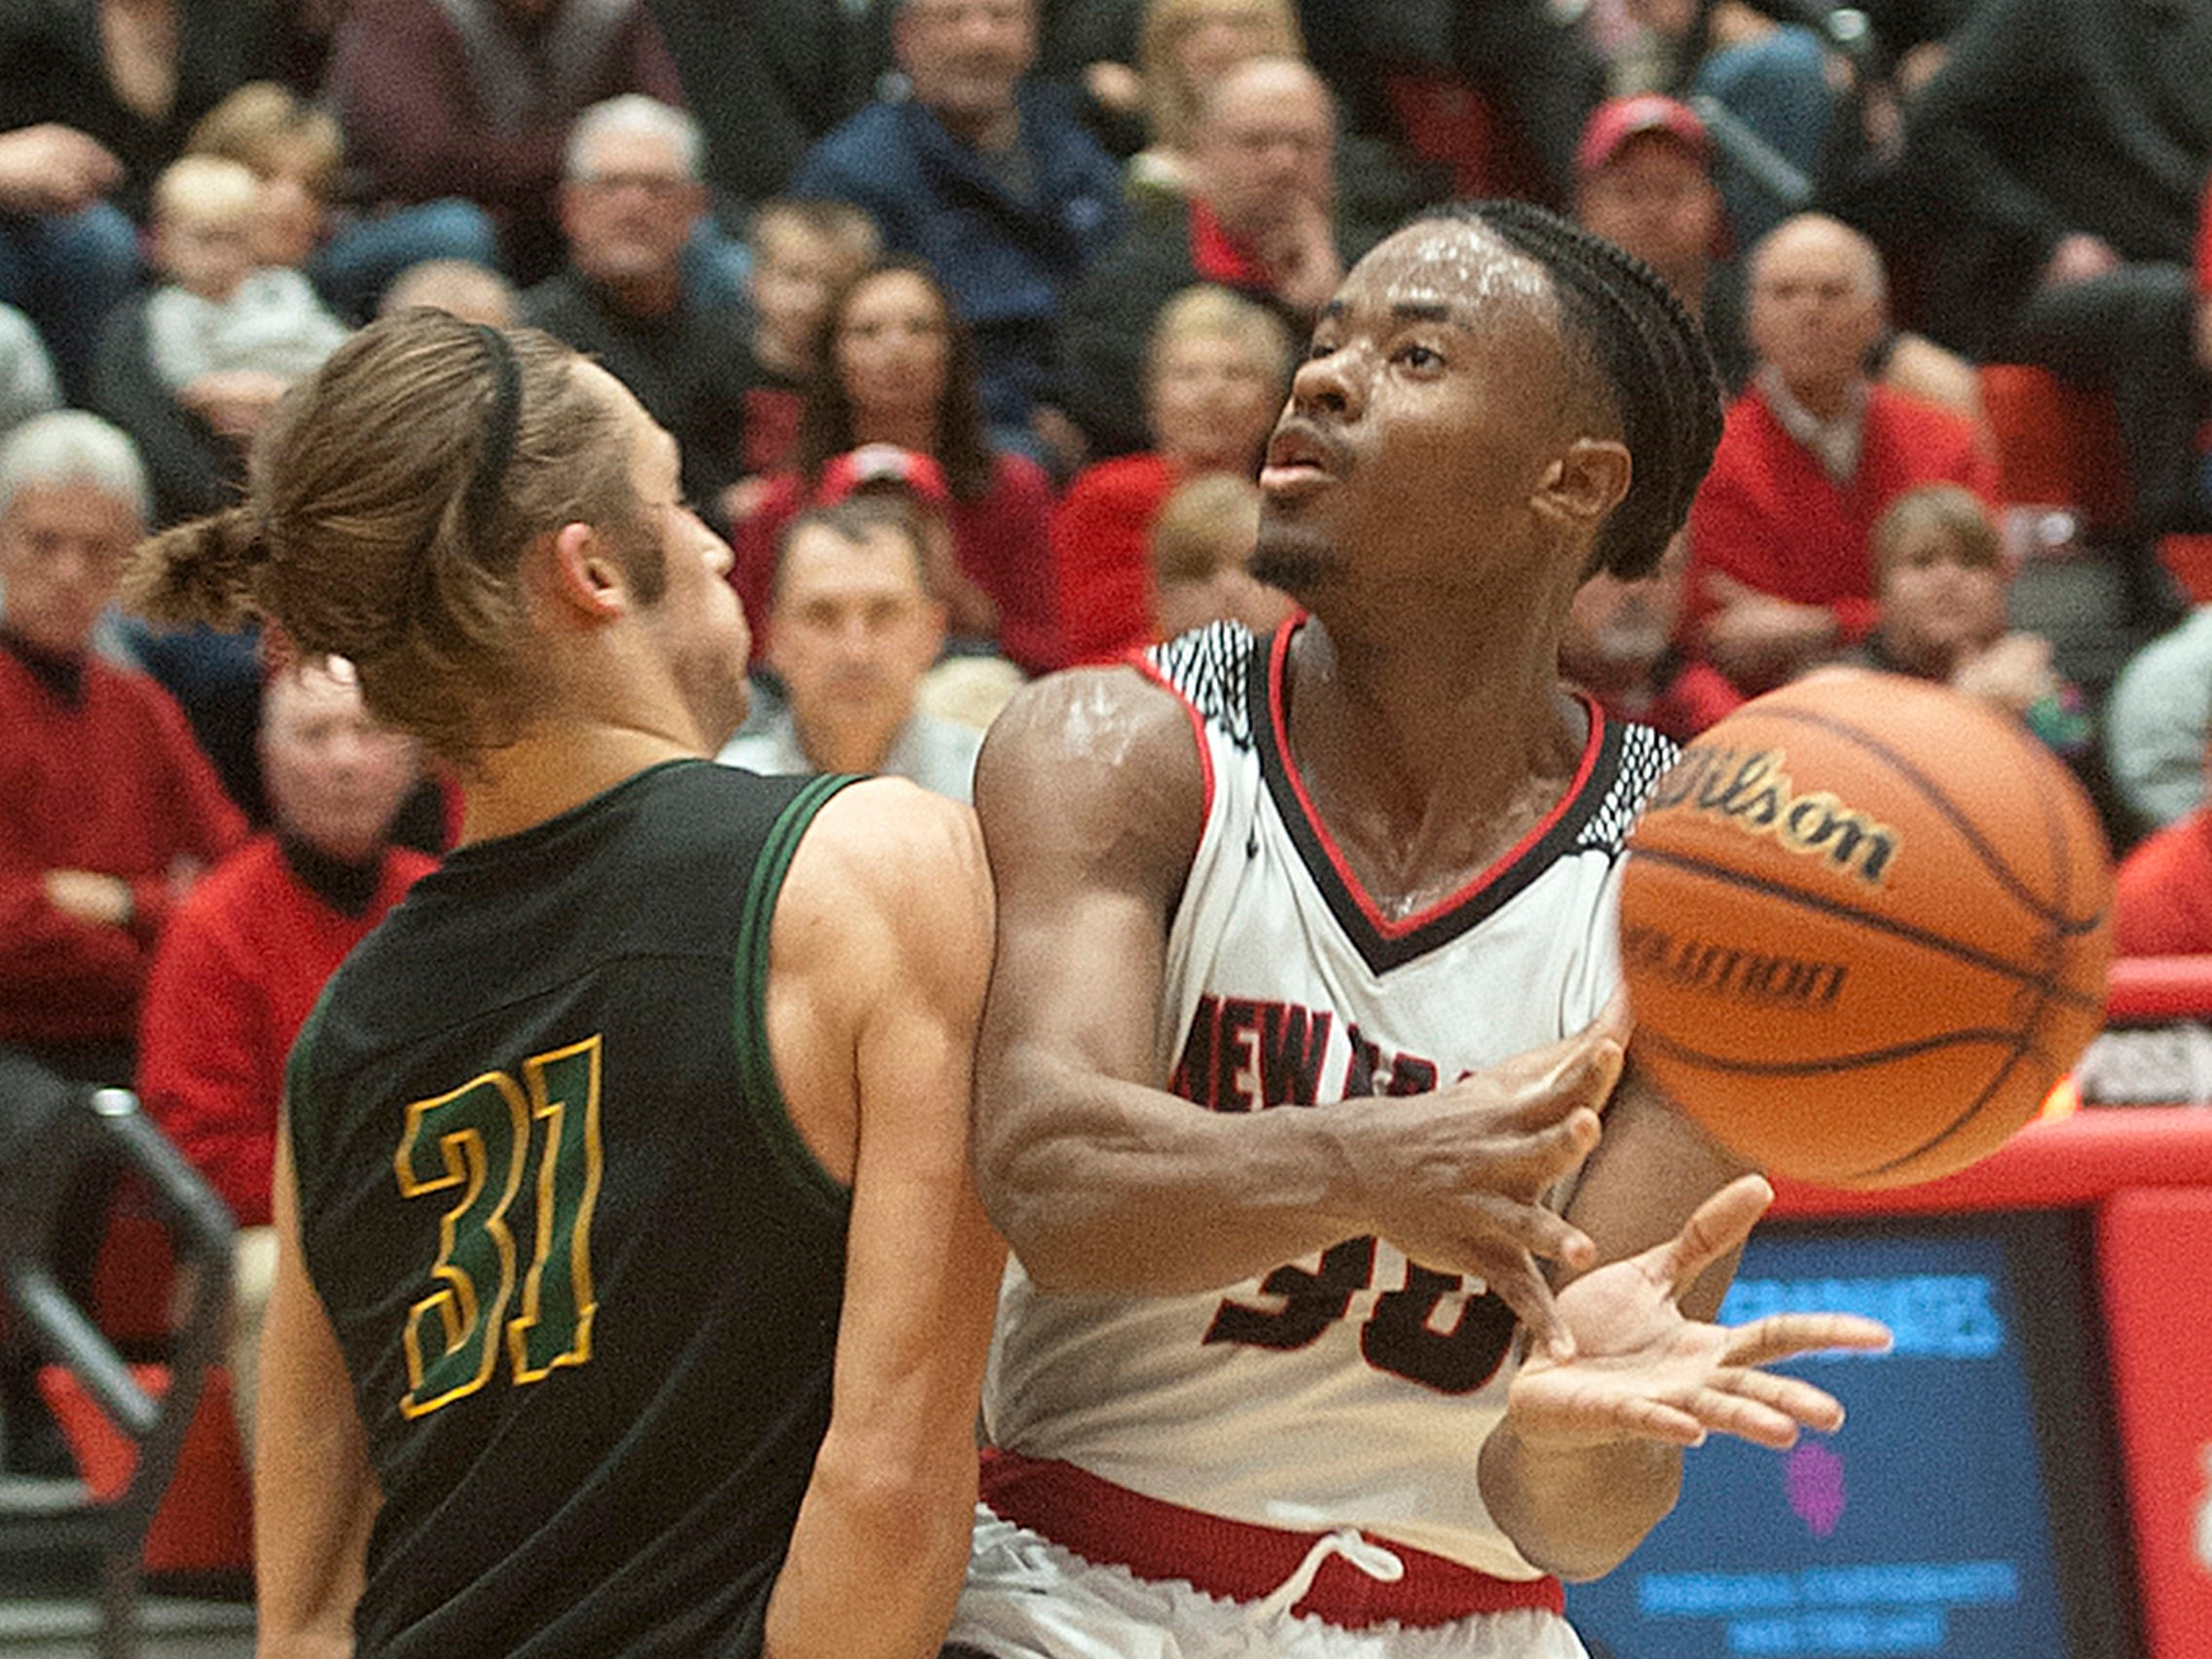 New Albany guard Julien Hunter gets the charging call after crashing into Floyd Central forward Cam Sturgeon. 07 December 2018